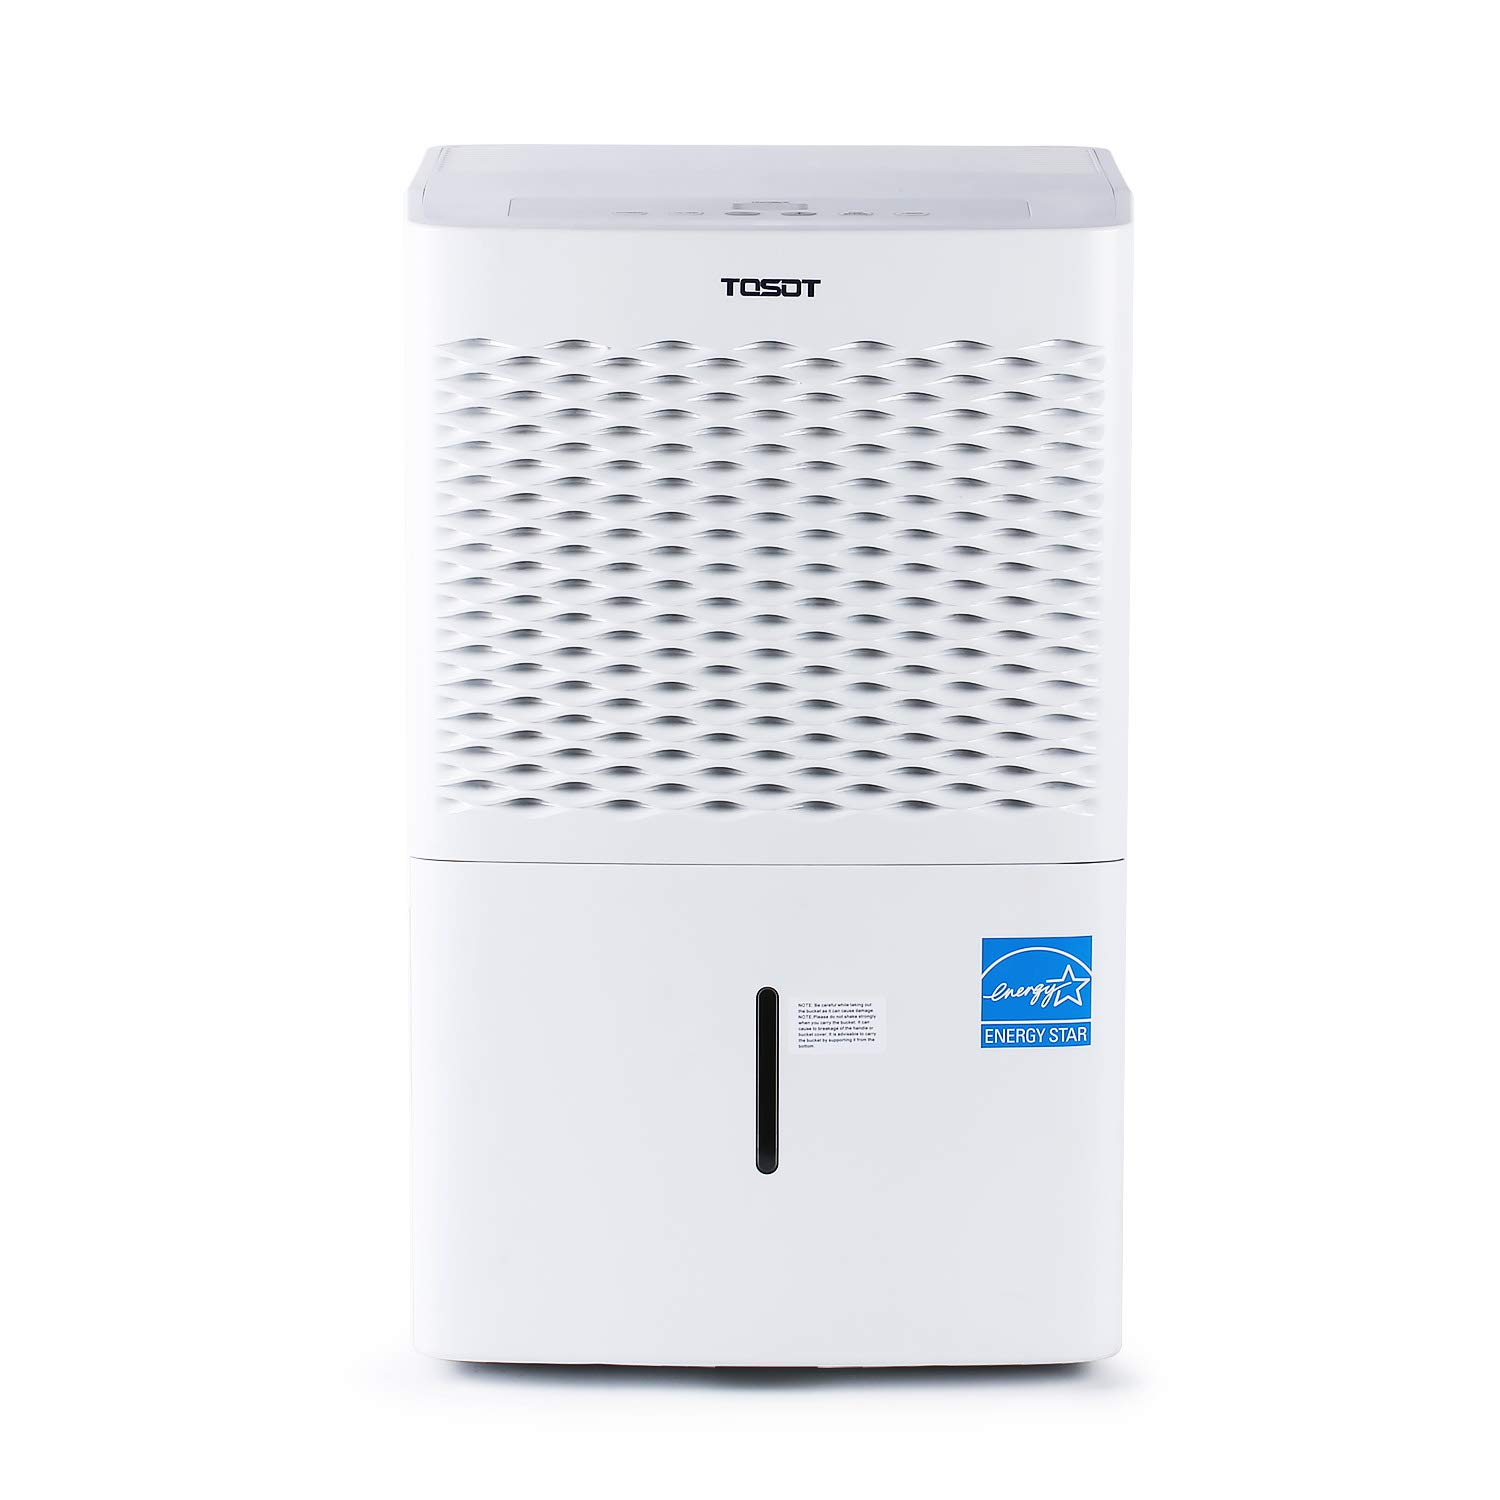 TOSOT 70 Pint Dehumidifier for Large Rooms up to 4500 Square feet - Energy Star, Quiet, Portable with Wheels, and Continuous Drain Hose Outlet - Dehumidifiers for Home, Basement, Bedroom, Bathroom